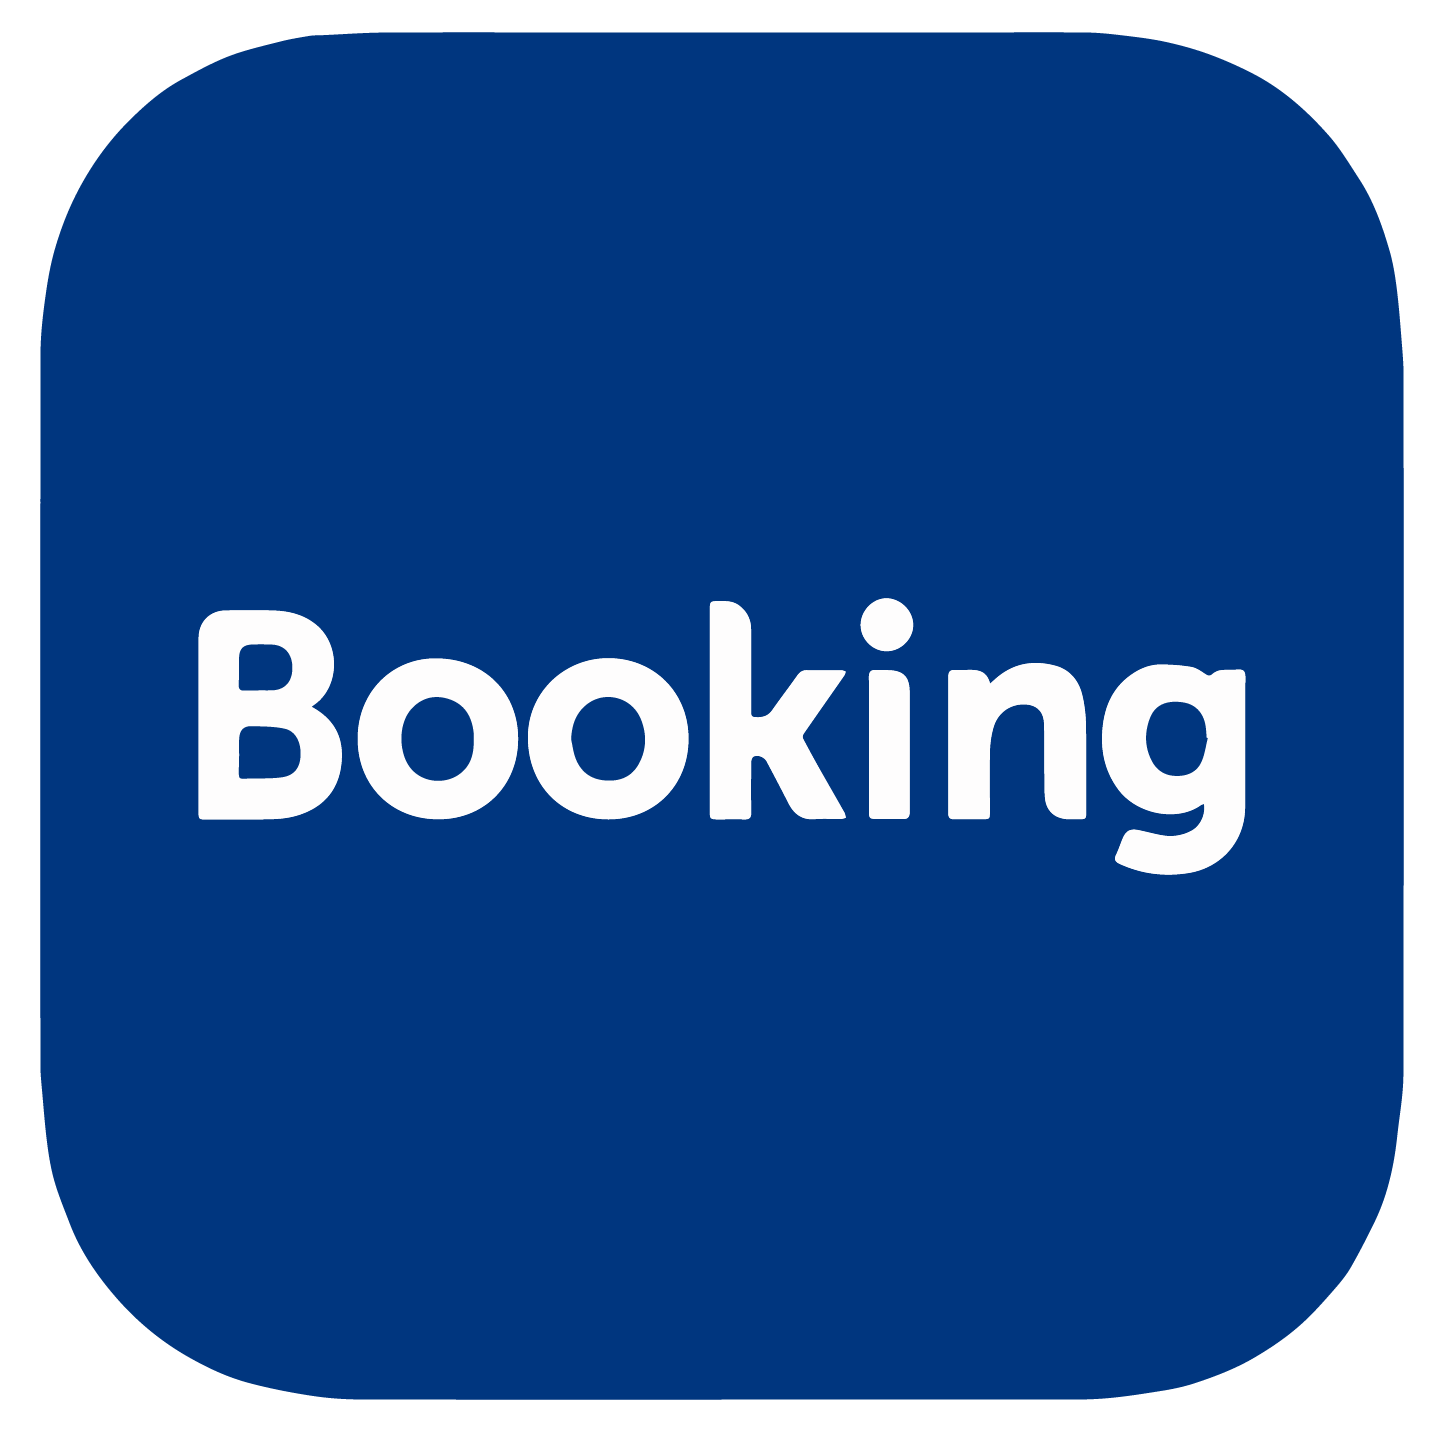 Booking Logo (icon) png